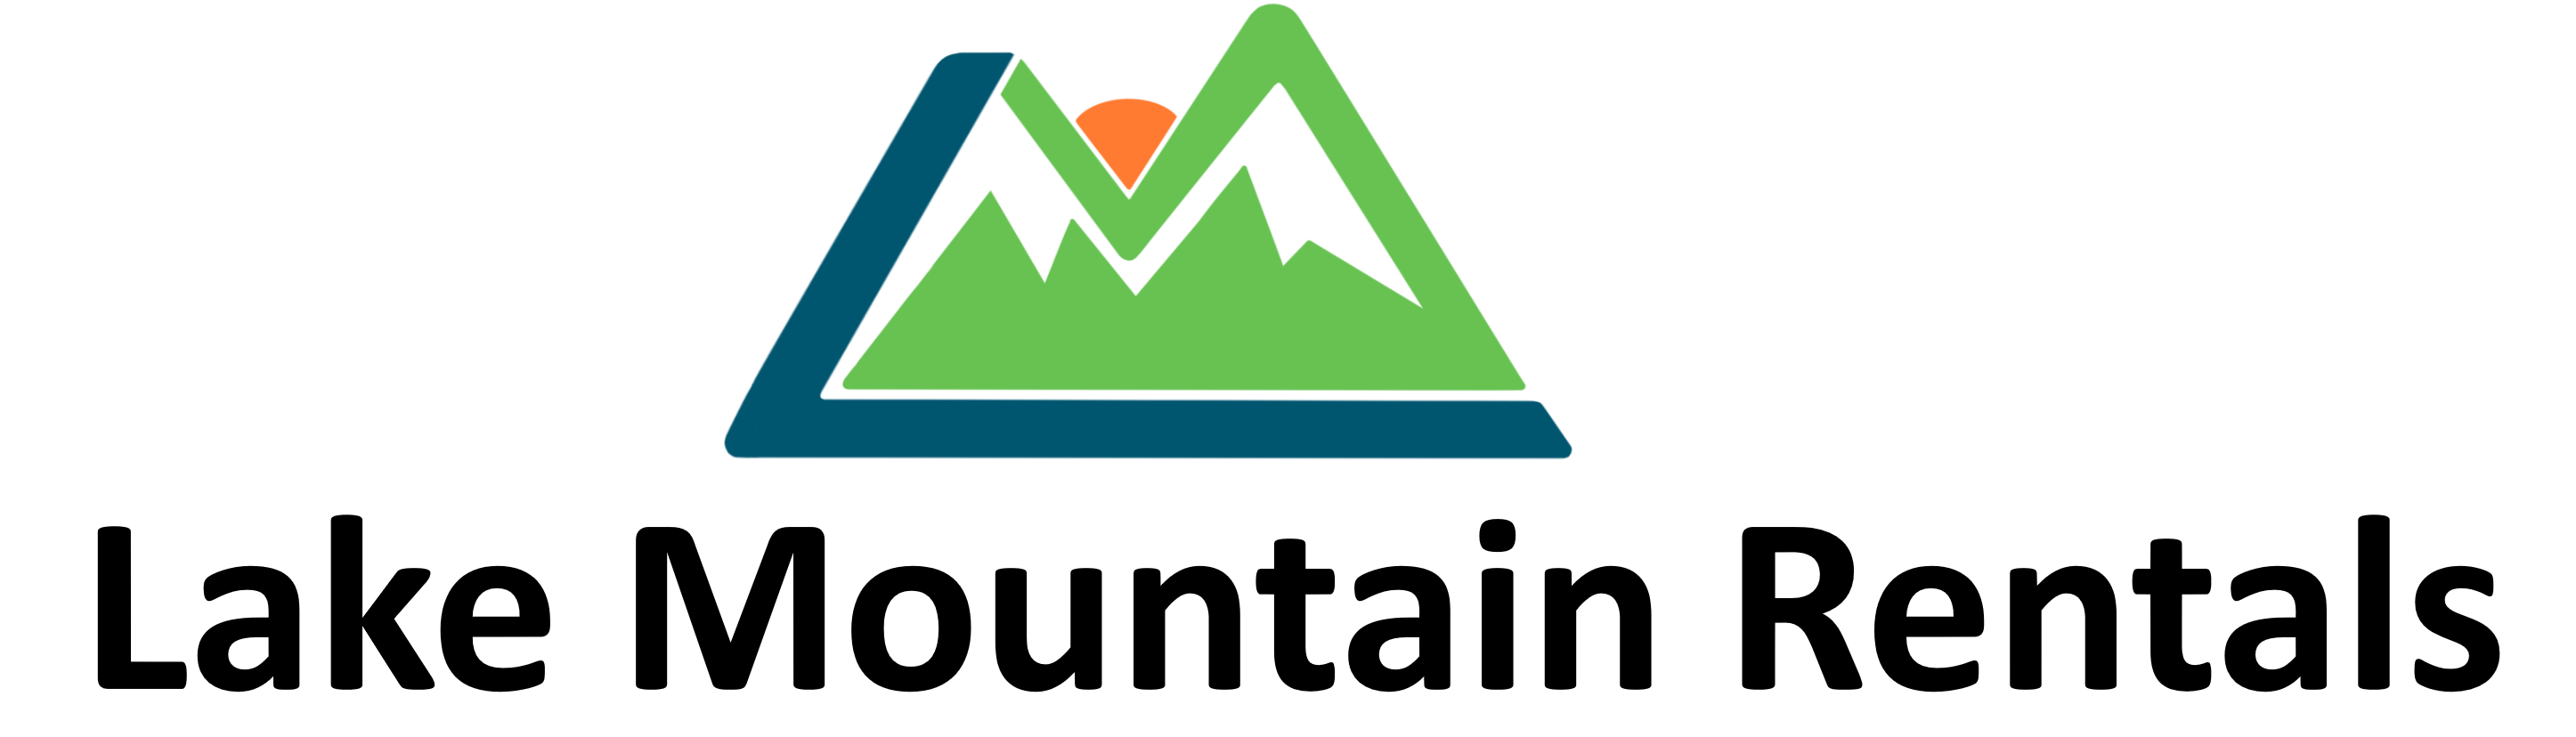 Lake Mountain Rentals